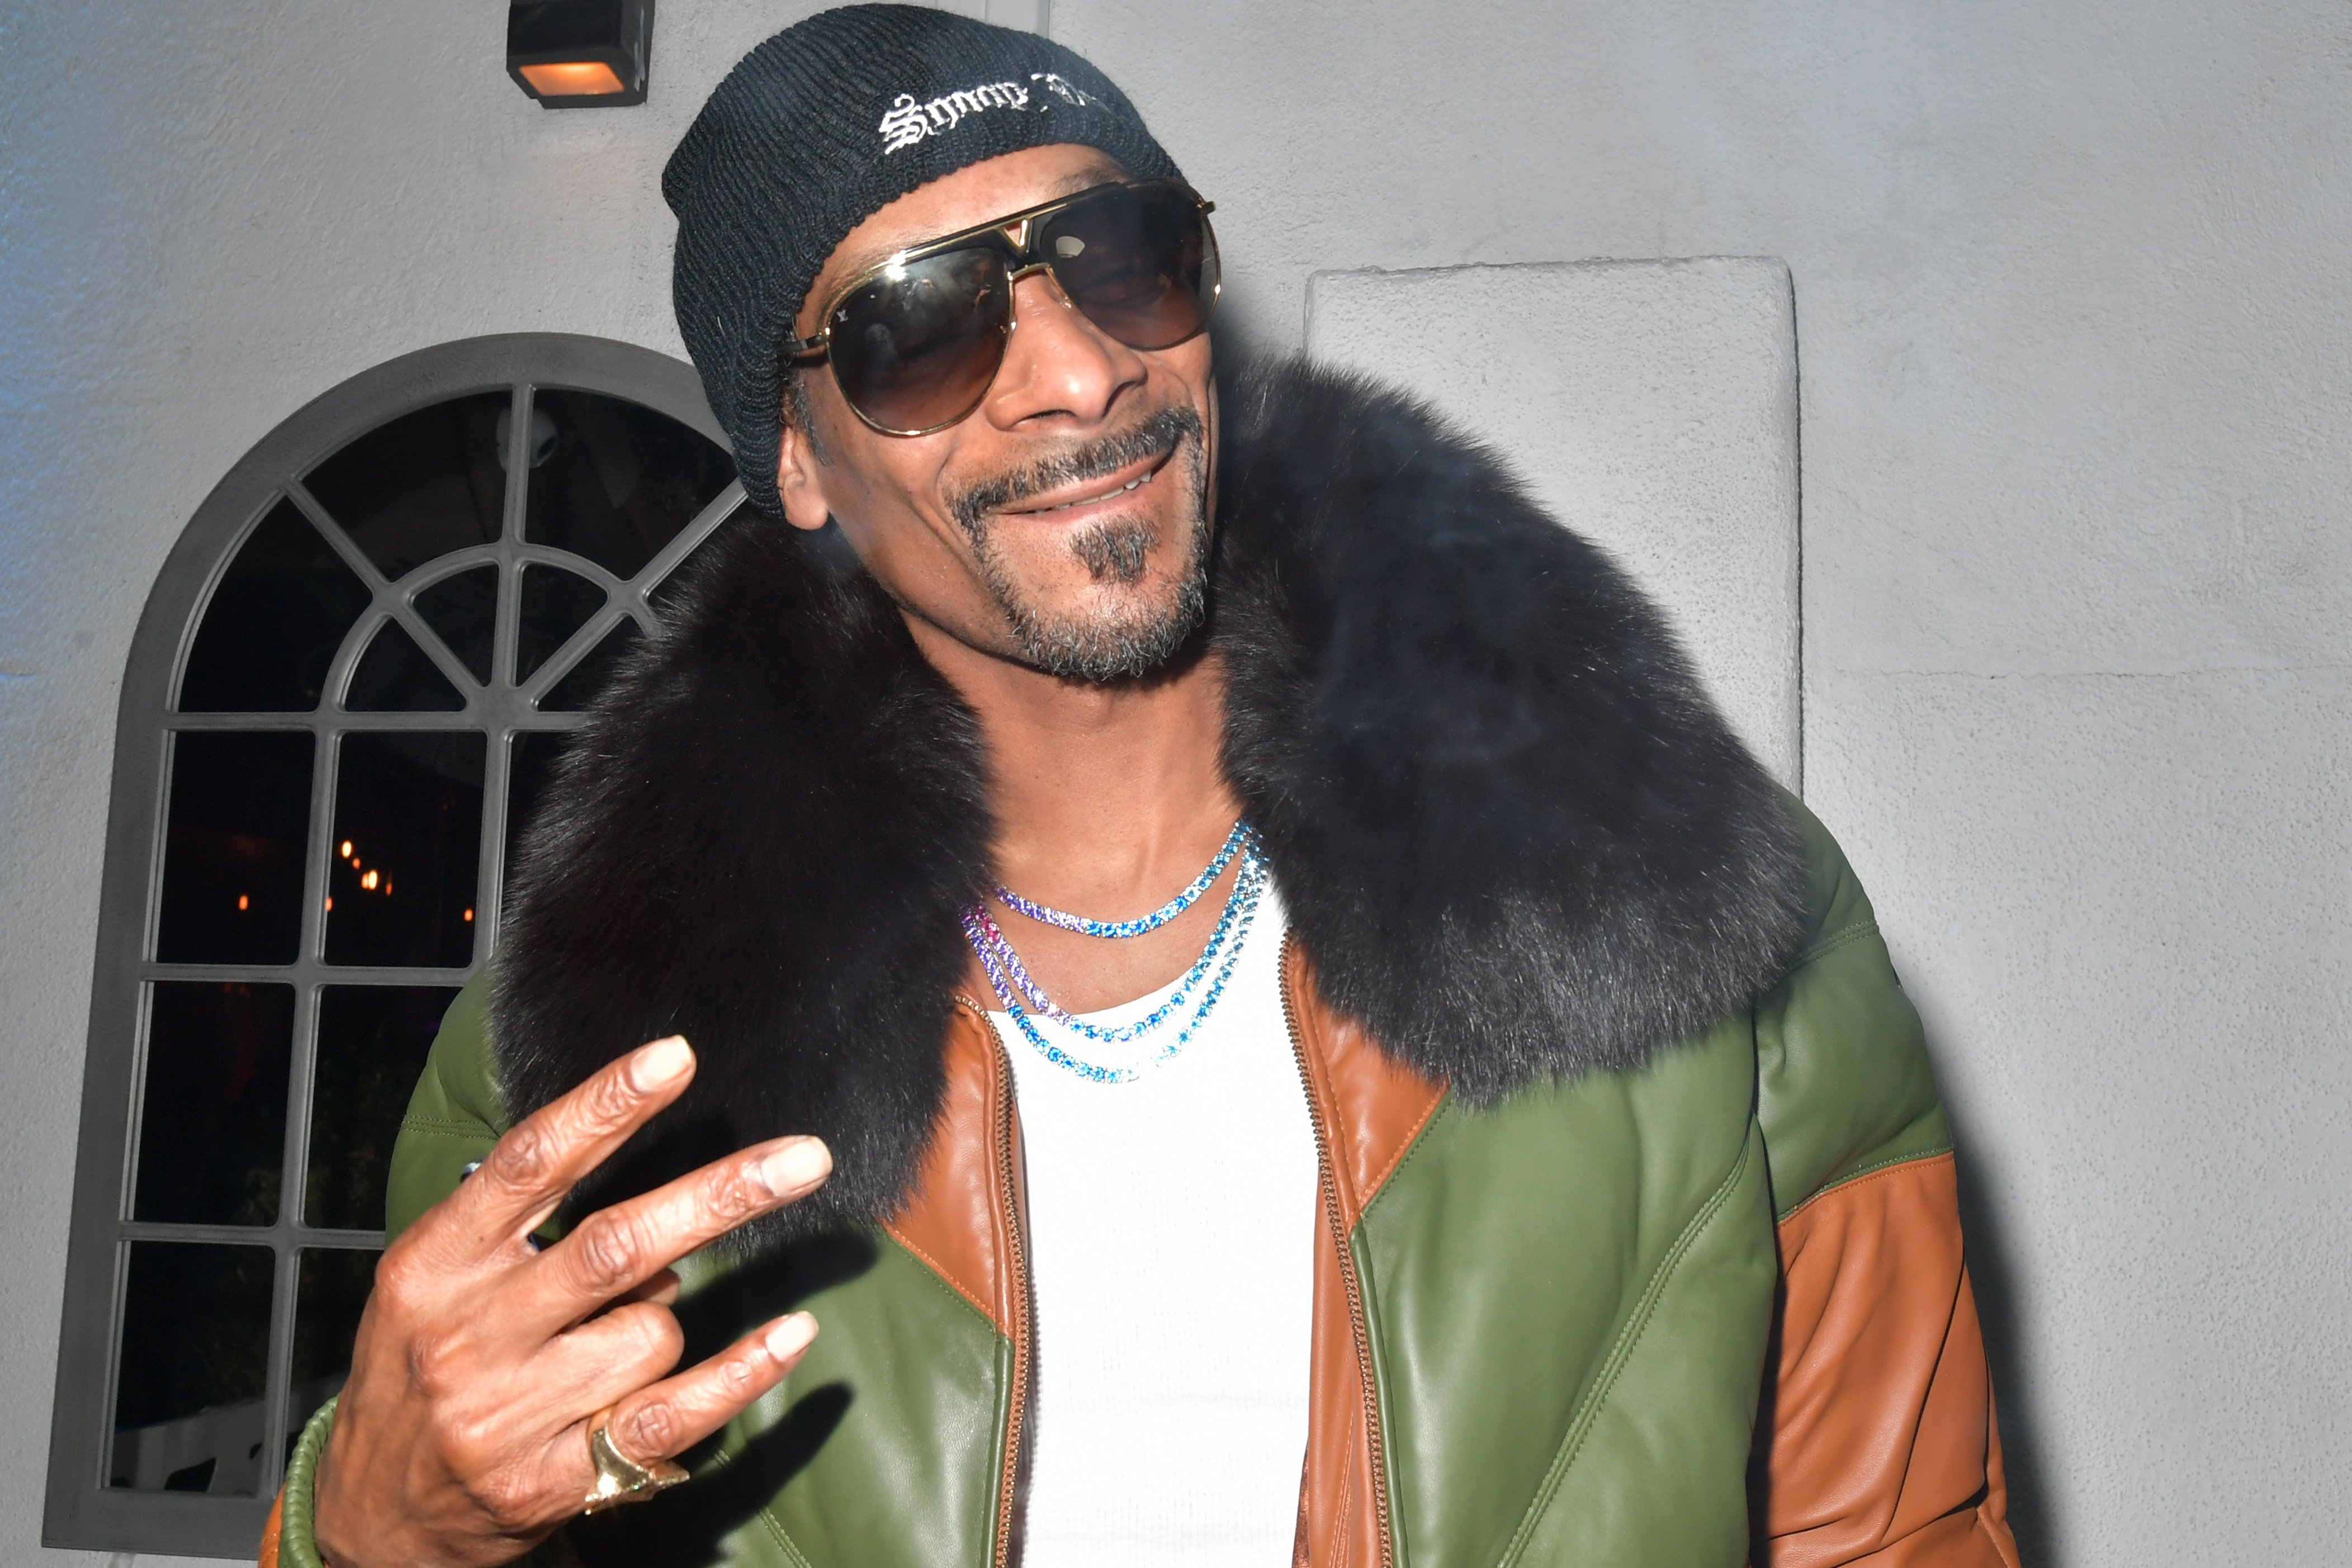 """Snoop Dogg attends the after party of Neon And Vice Studio's """"The Beach Bum"""" at ArcLight Hollywood on March 28, 2019 